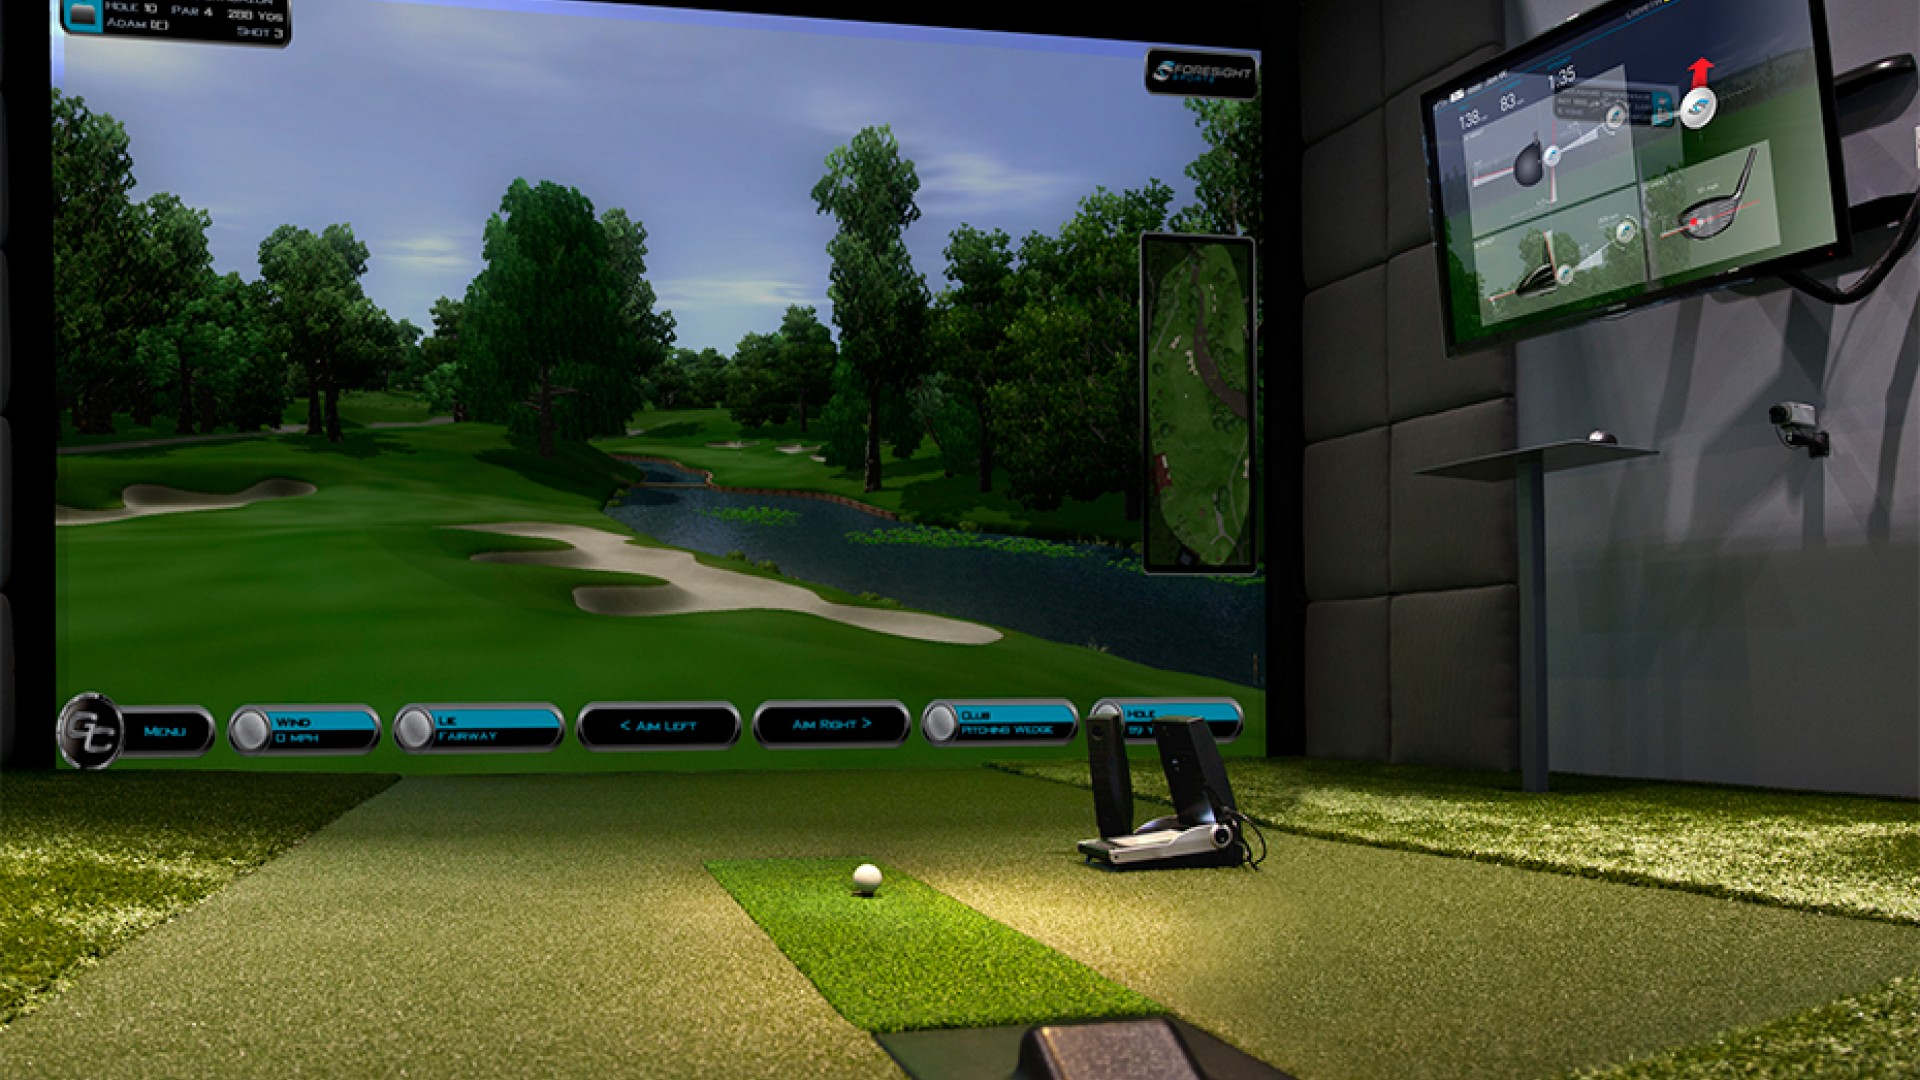 Baby it 39 s cold outside time to buy a golf simulator for Golf simulator room dimensions